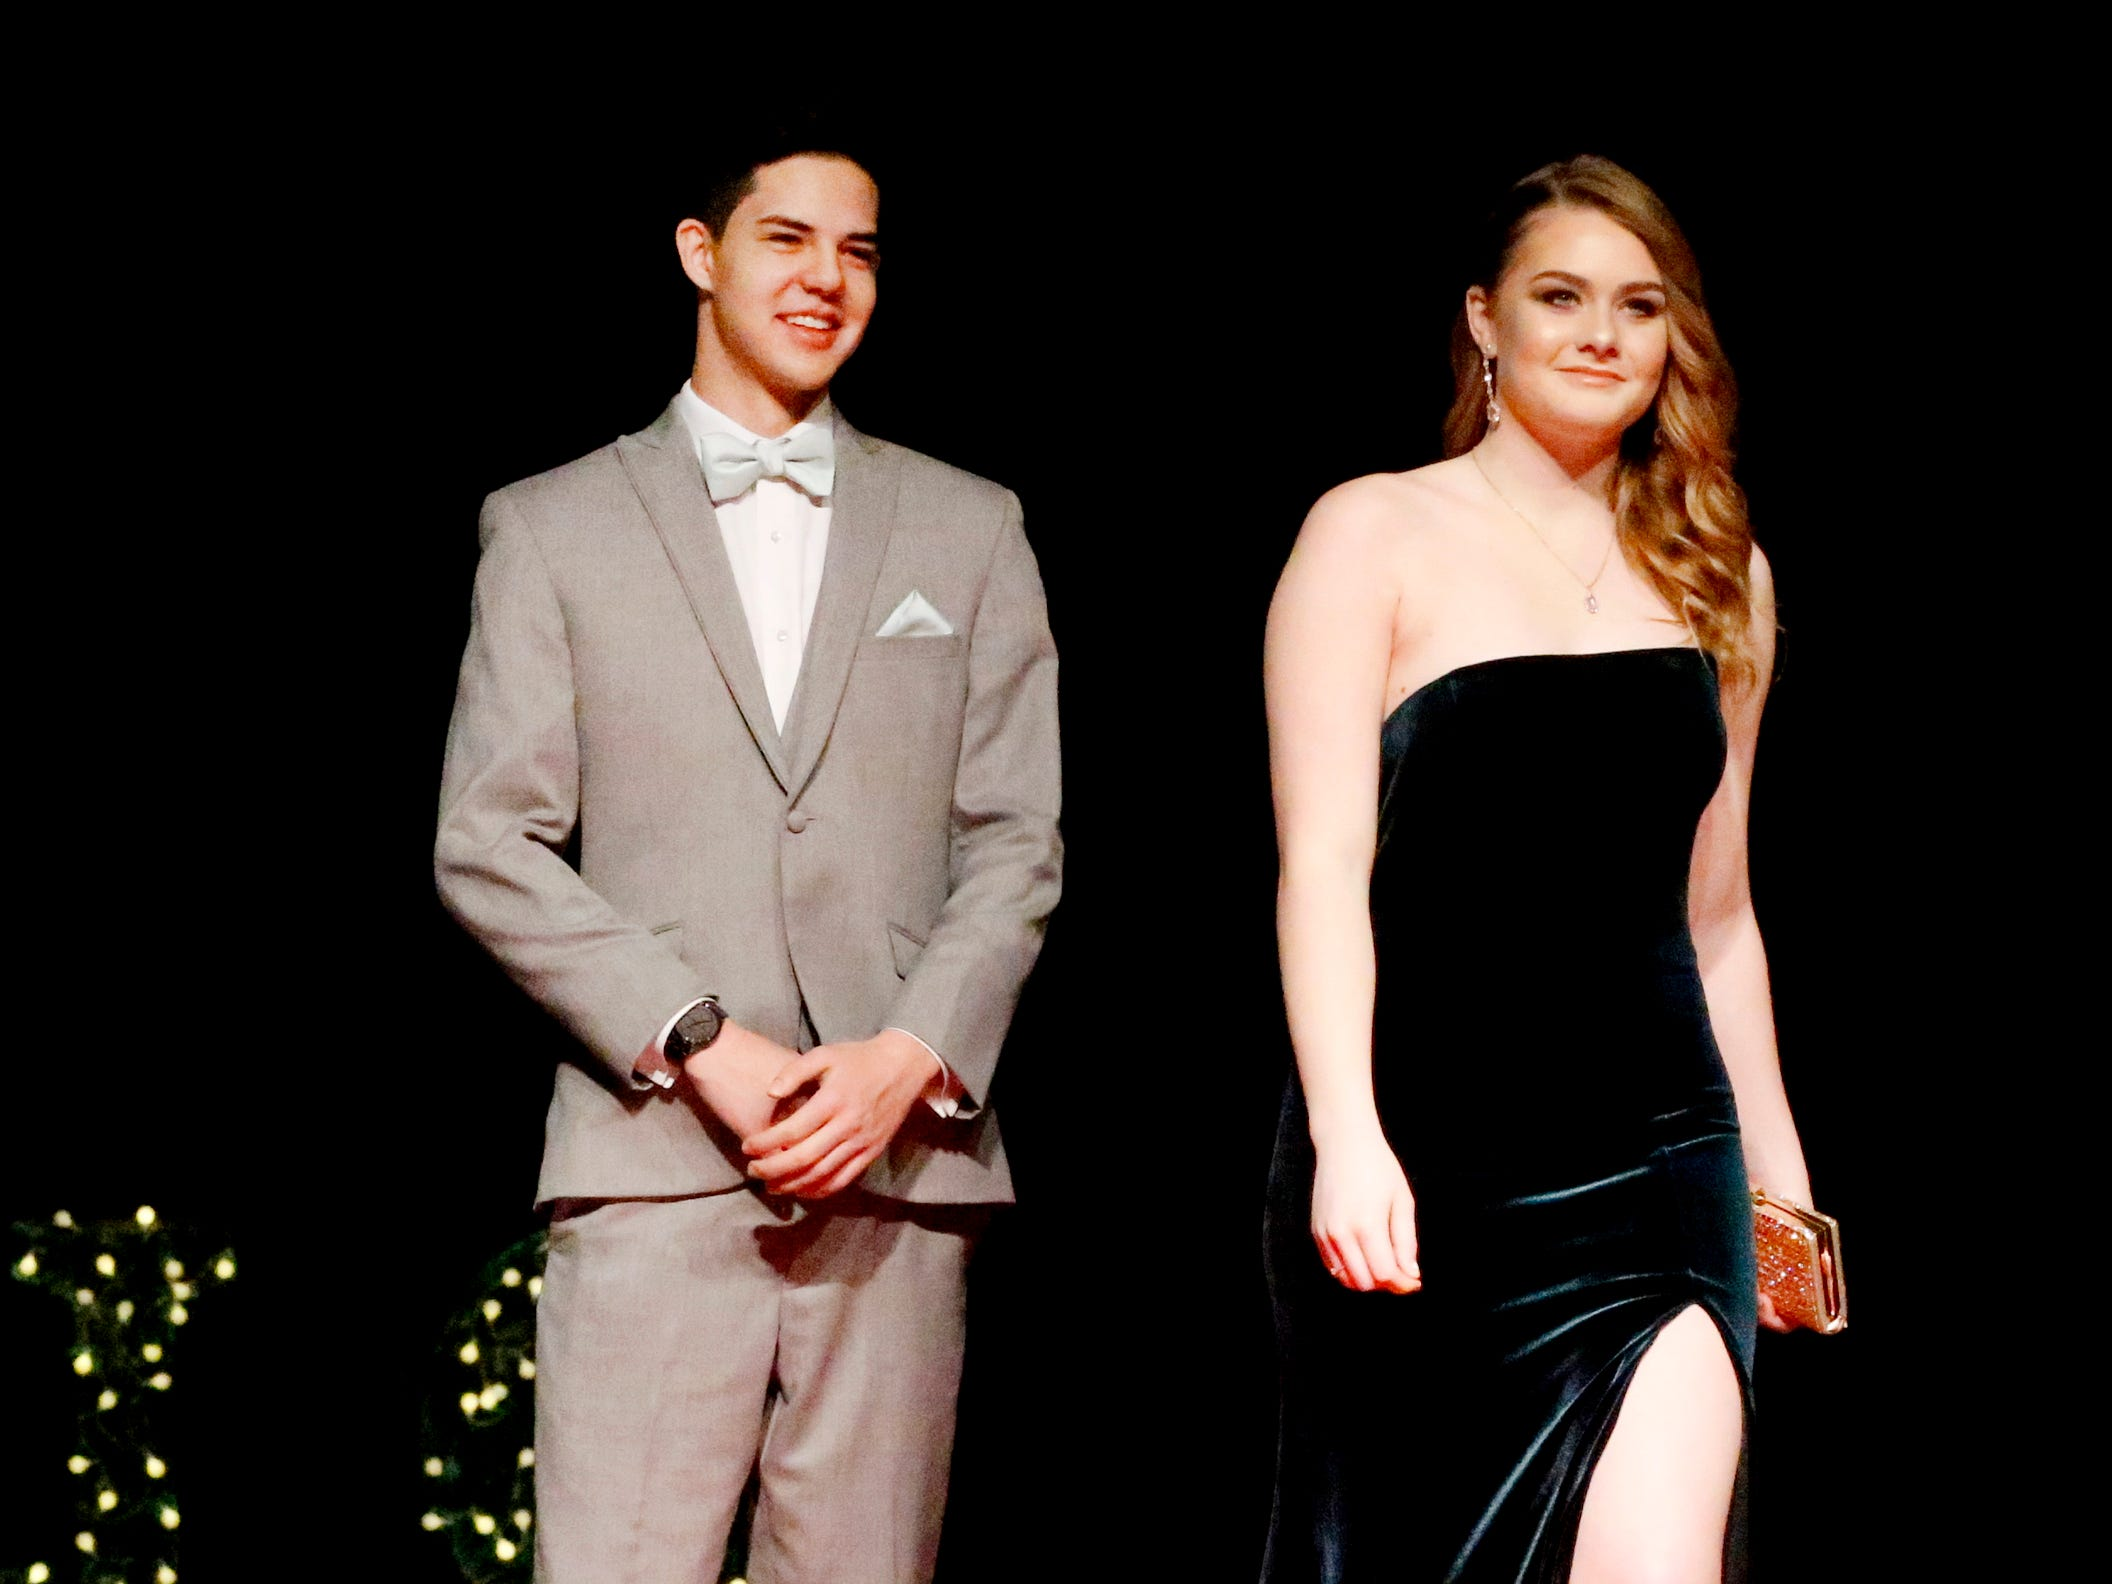 Tristian Cunningham, left and Courtney Donnelly, right show off the latest in prom fashions during the Siegel Prom Fashion show on Thursday, Feb. 14, 2019.